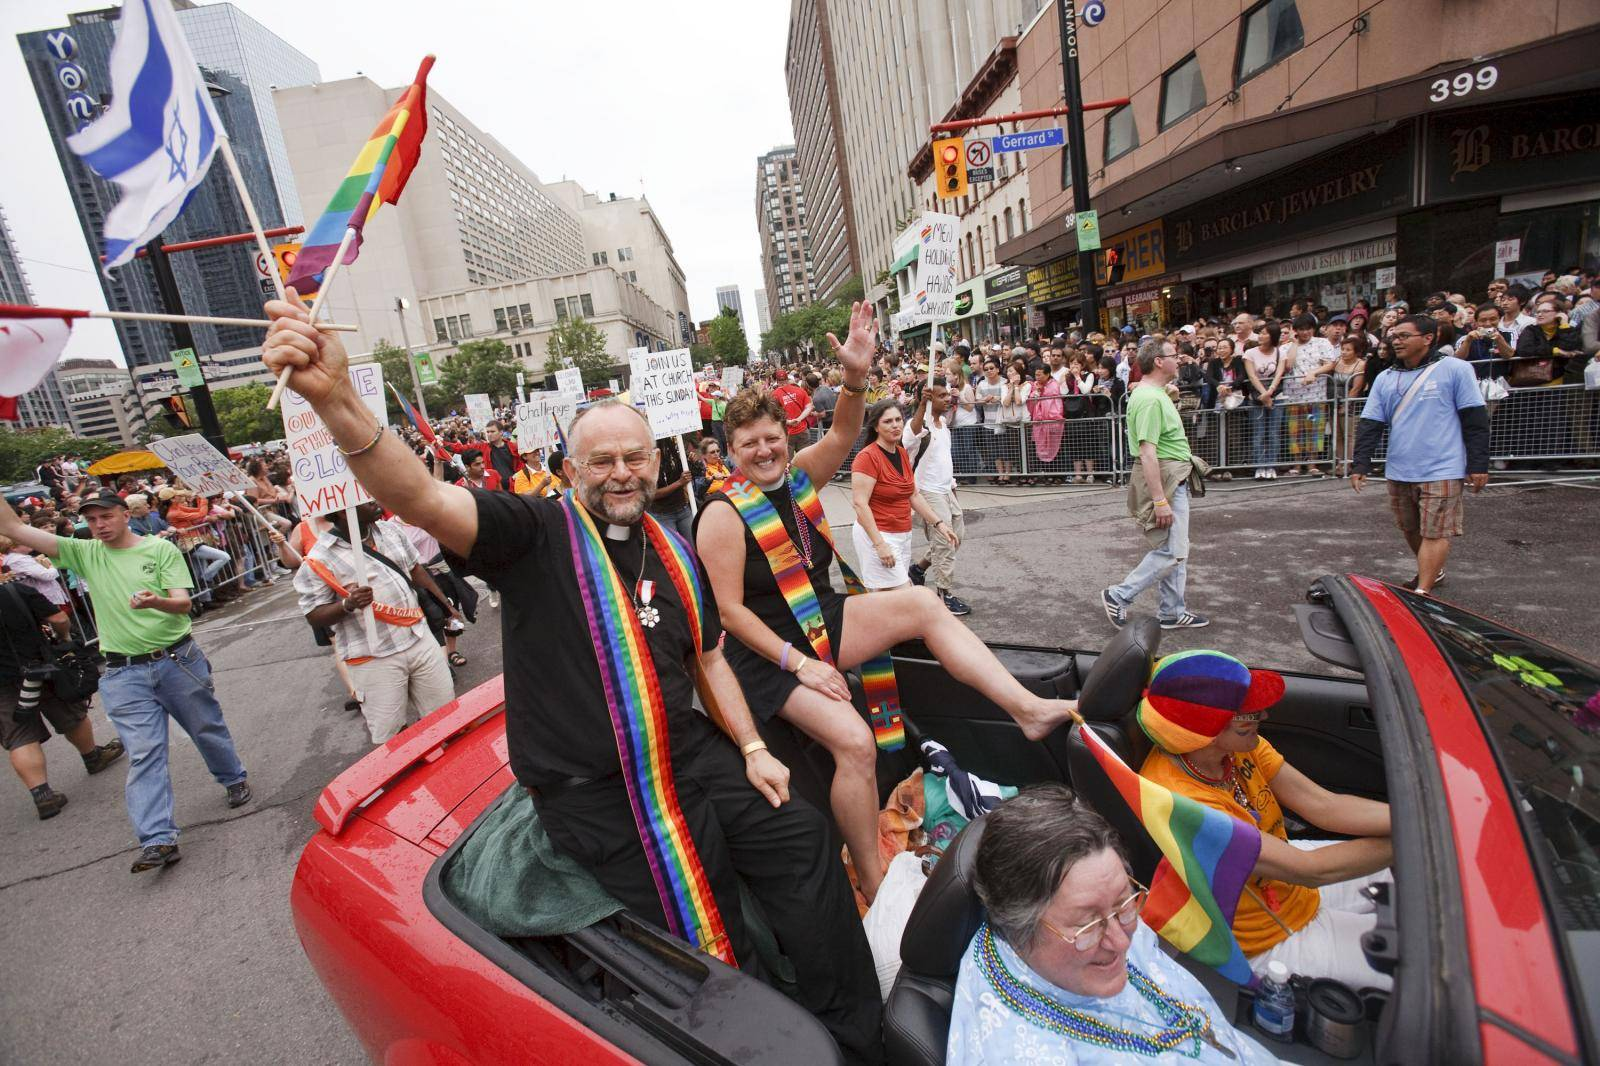 The Rev. Dr. Brent Hawkes & Rev. Jo Bell from the Metropolitan Community Church of Toronto ride down Yonge Street in the 29th Annual Pride Parade, Toronto, Canada.